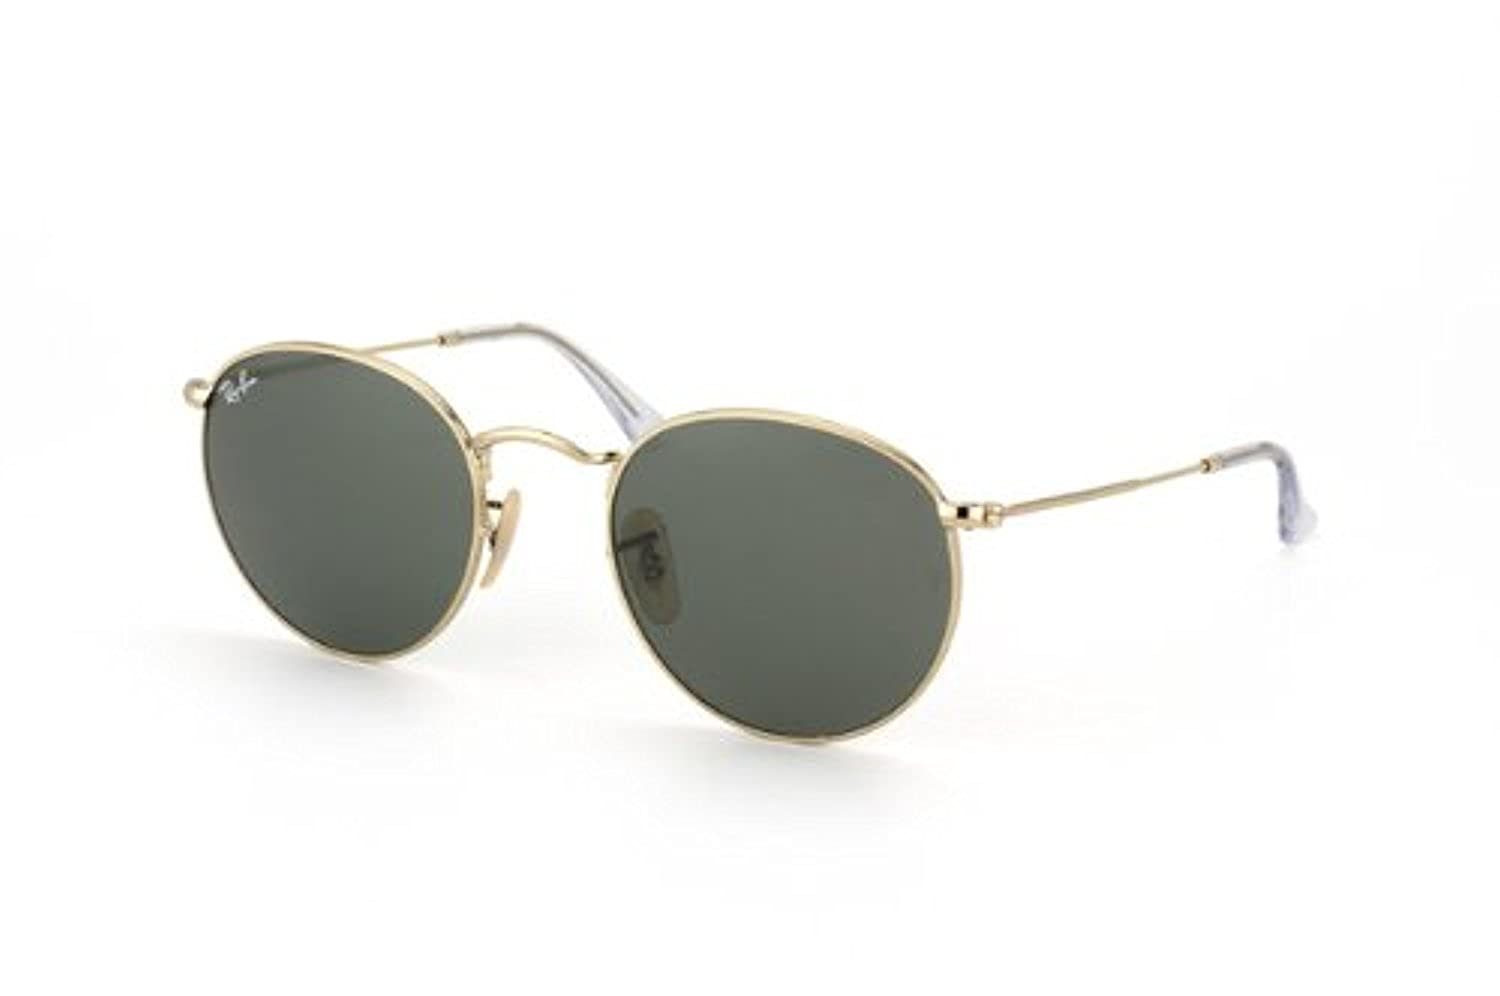 RB RB3447 Round Metal Sunglasses Arista//Crystal Green 47mm /& Care Kit